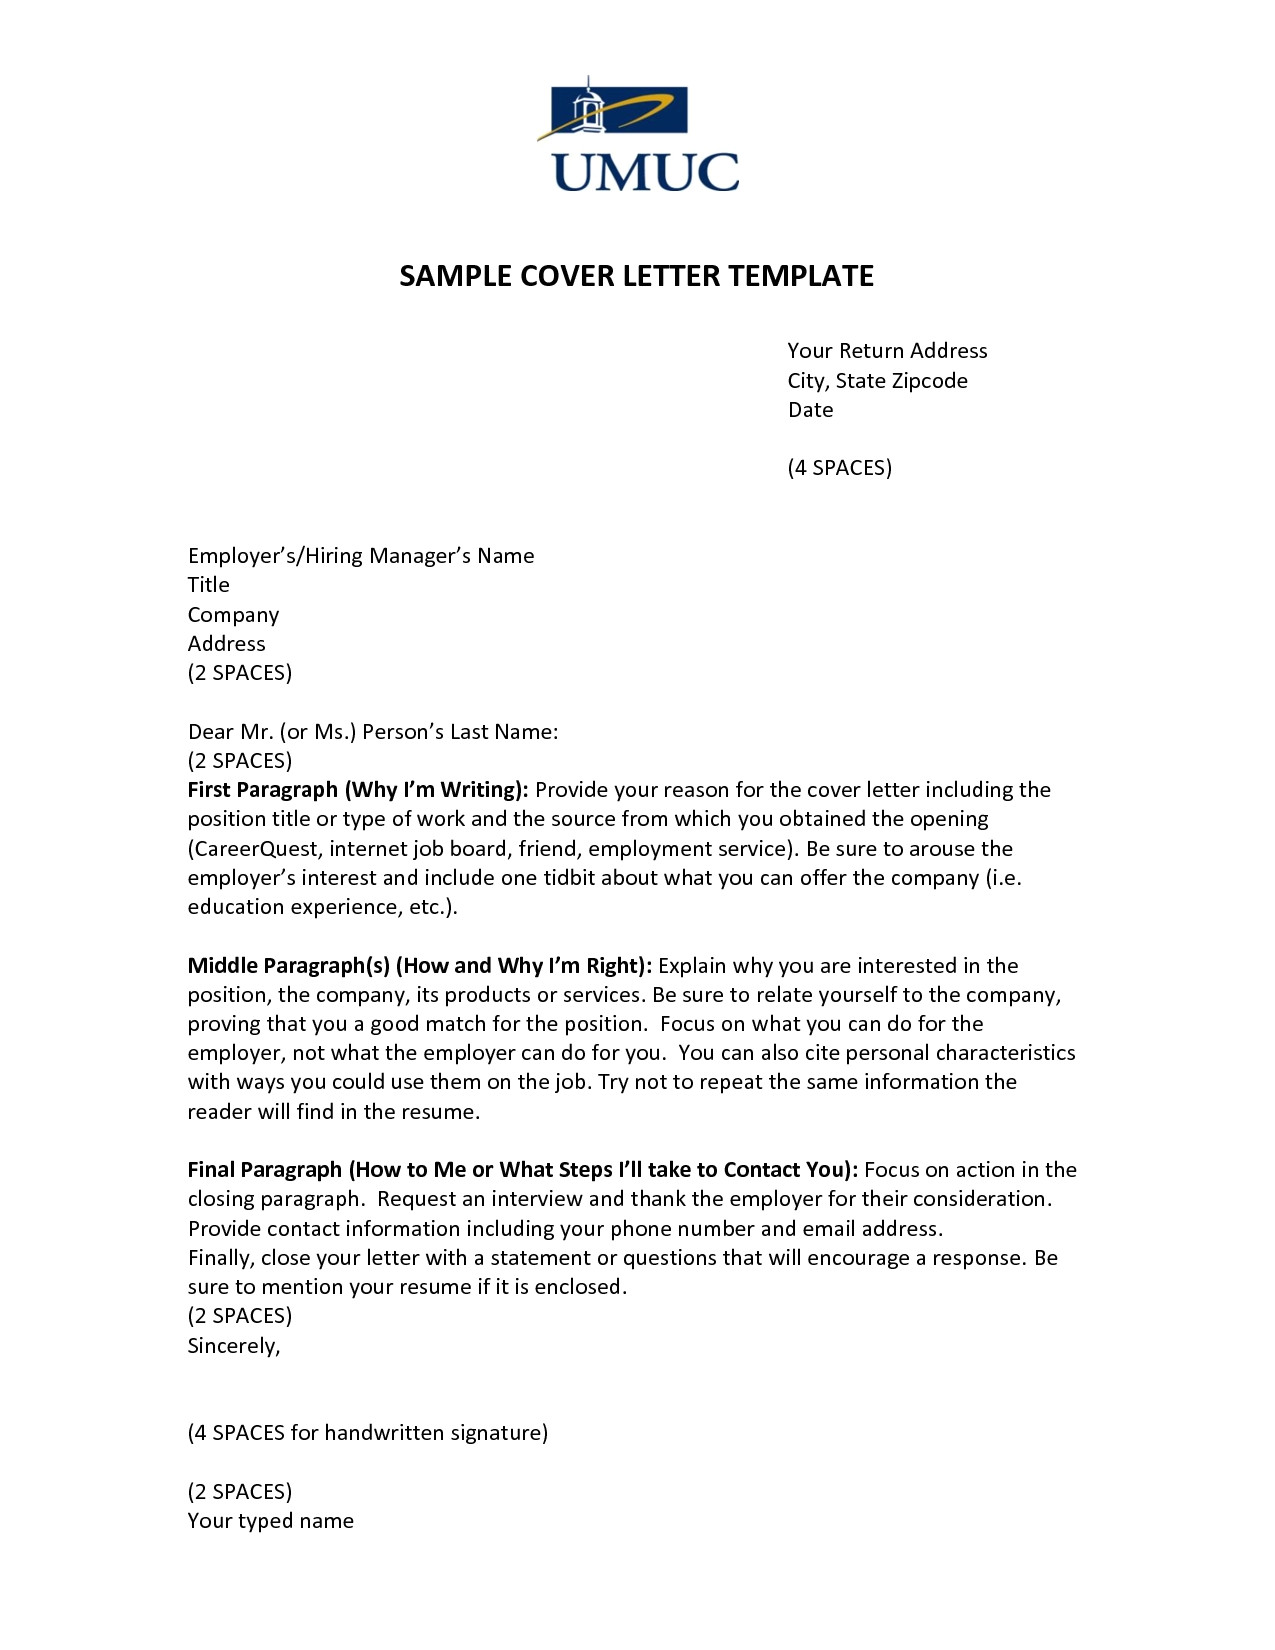 How to Finish A Cover Letter Cover Letter Closing Paragraph Examples the Letter Sample